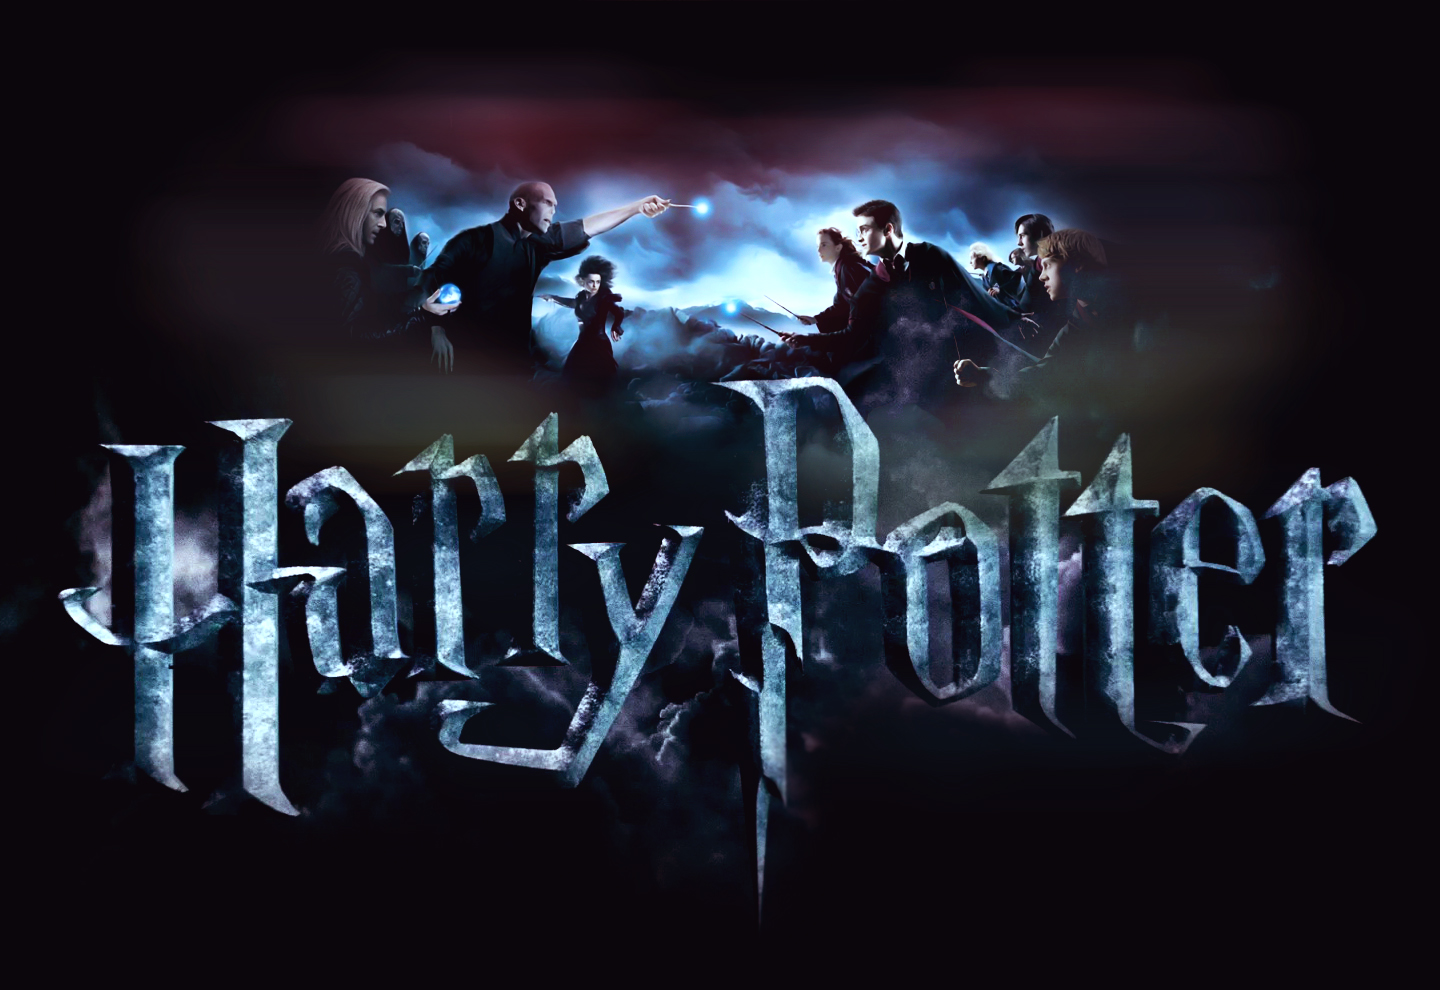 Harry potter wallpaper free for free wallpaper pic mch071345 dzbc download voltagebd Image collections